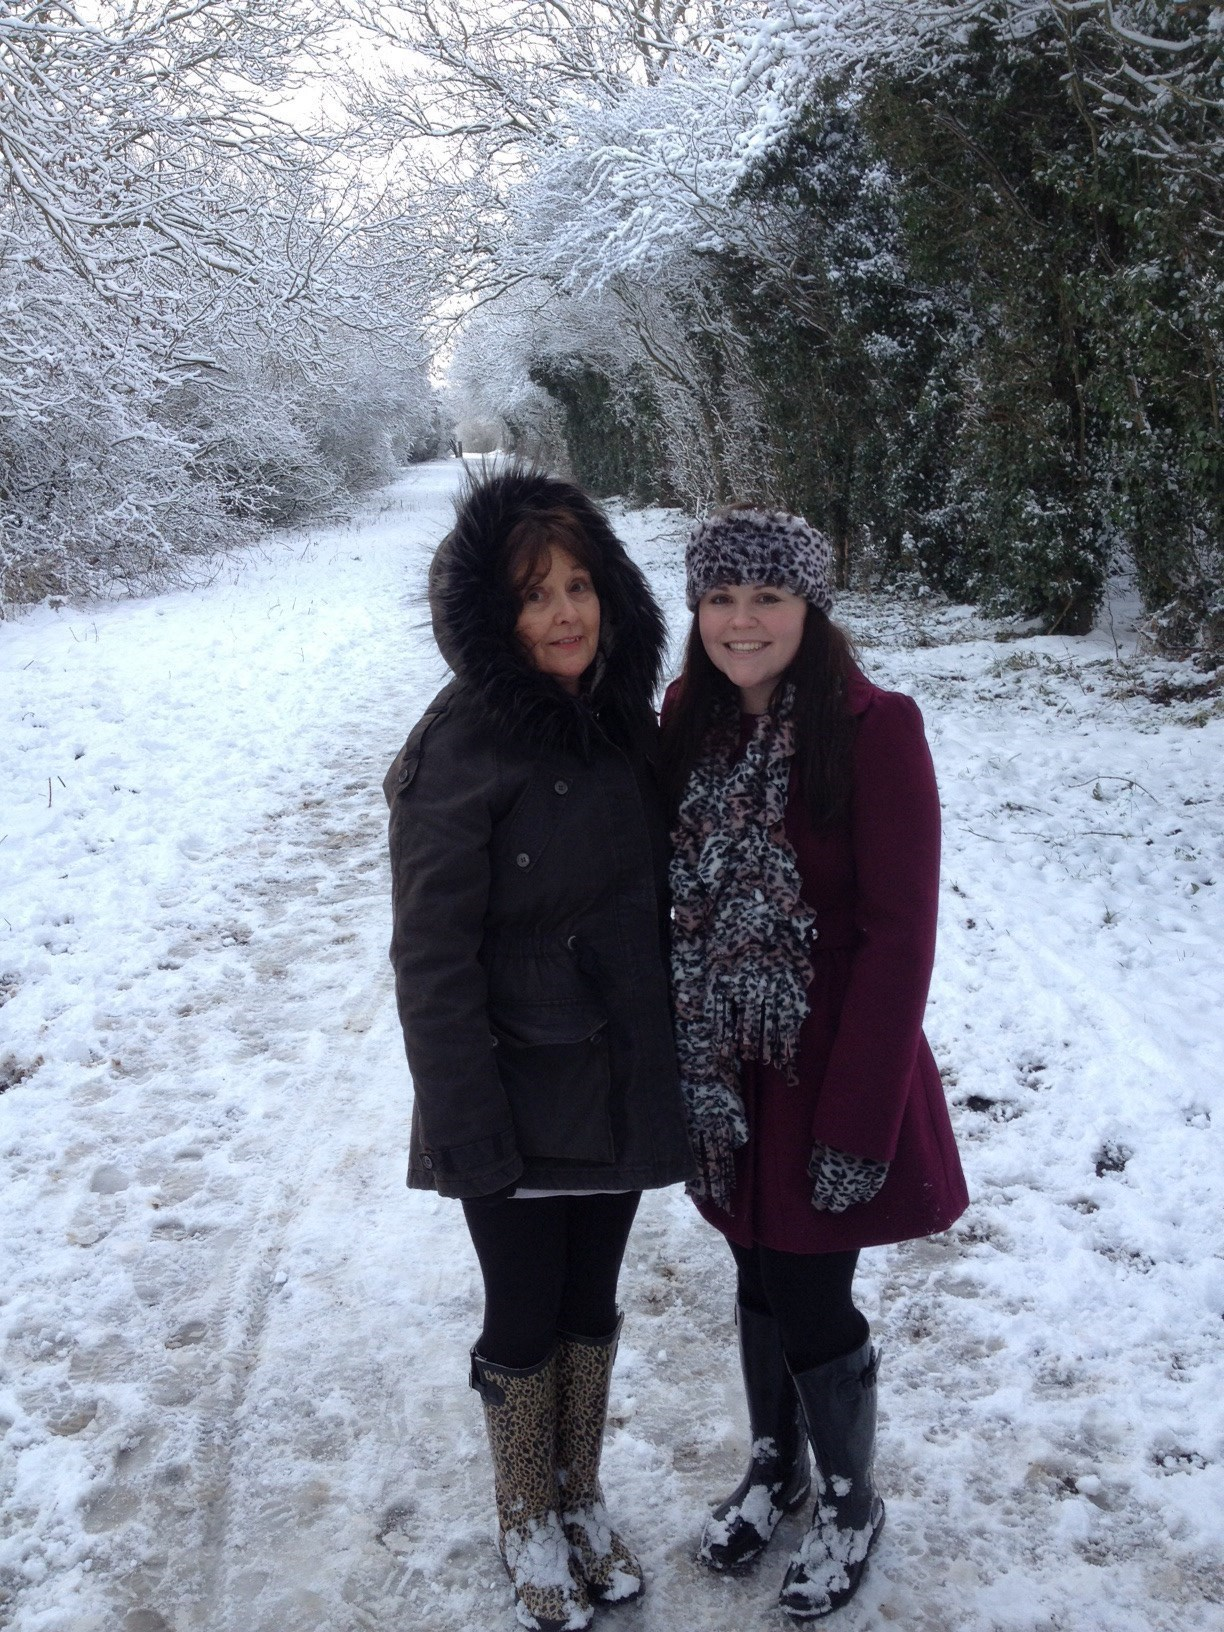 In the snow with Mum